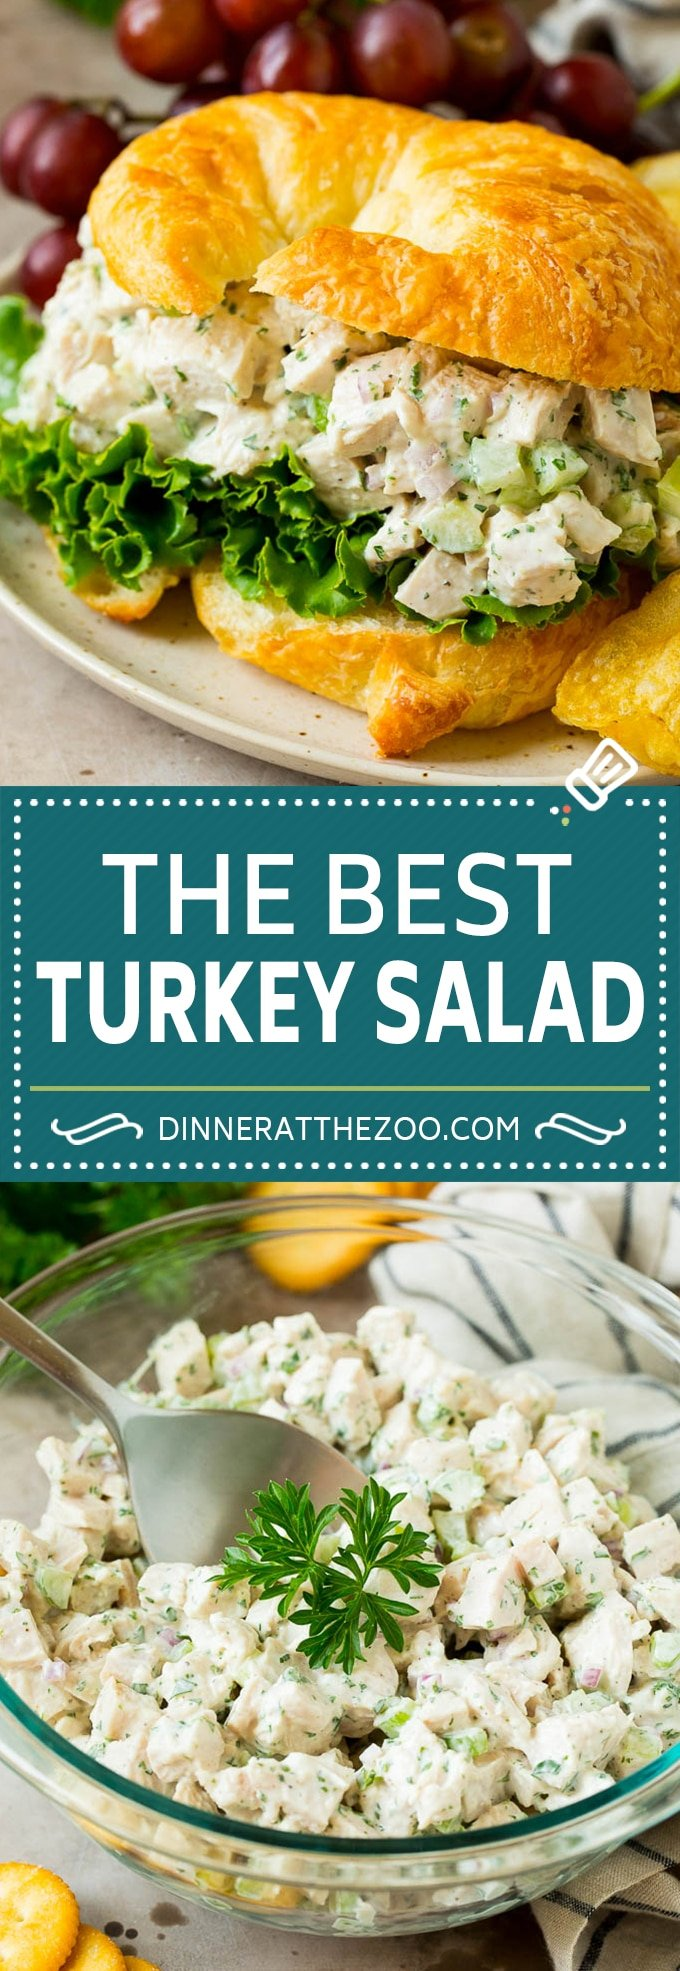 This turkey salad is a blend of diced turkey and colorful veggies, all tossed in a savory creamy dressing.